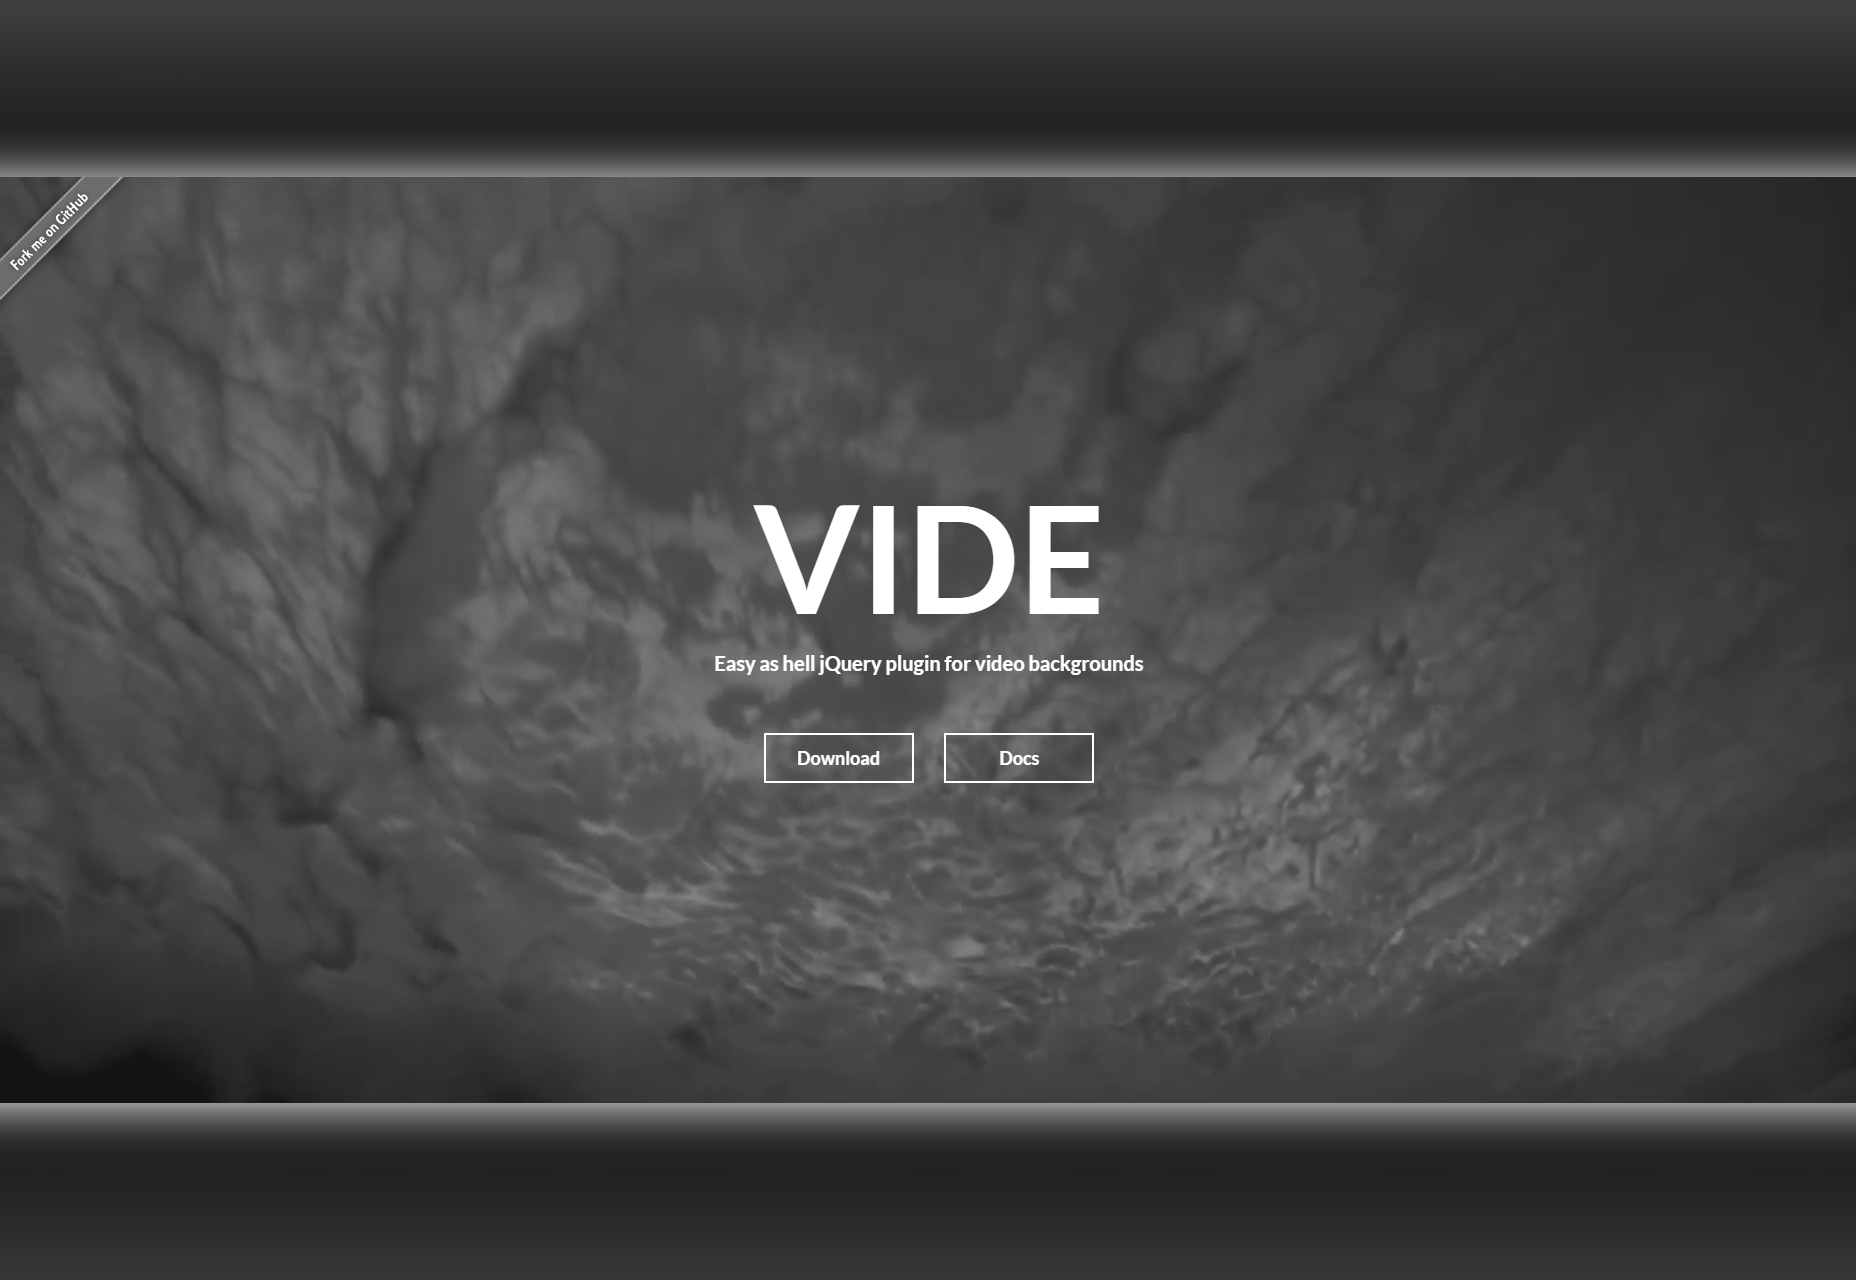 Vide: Video Background jQuery Plugin